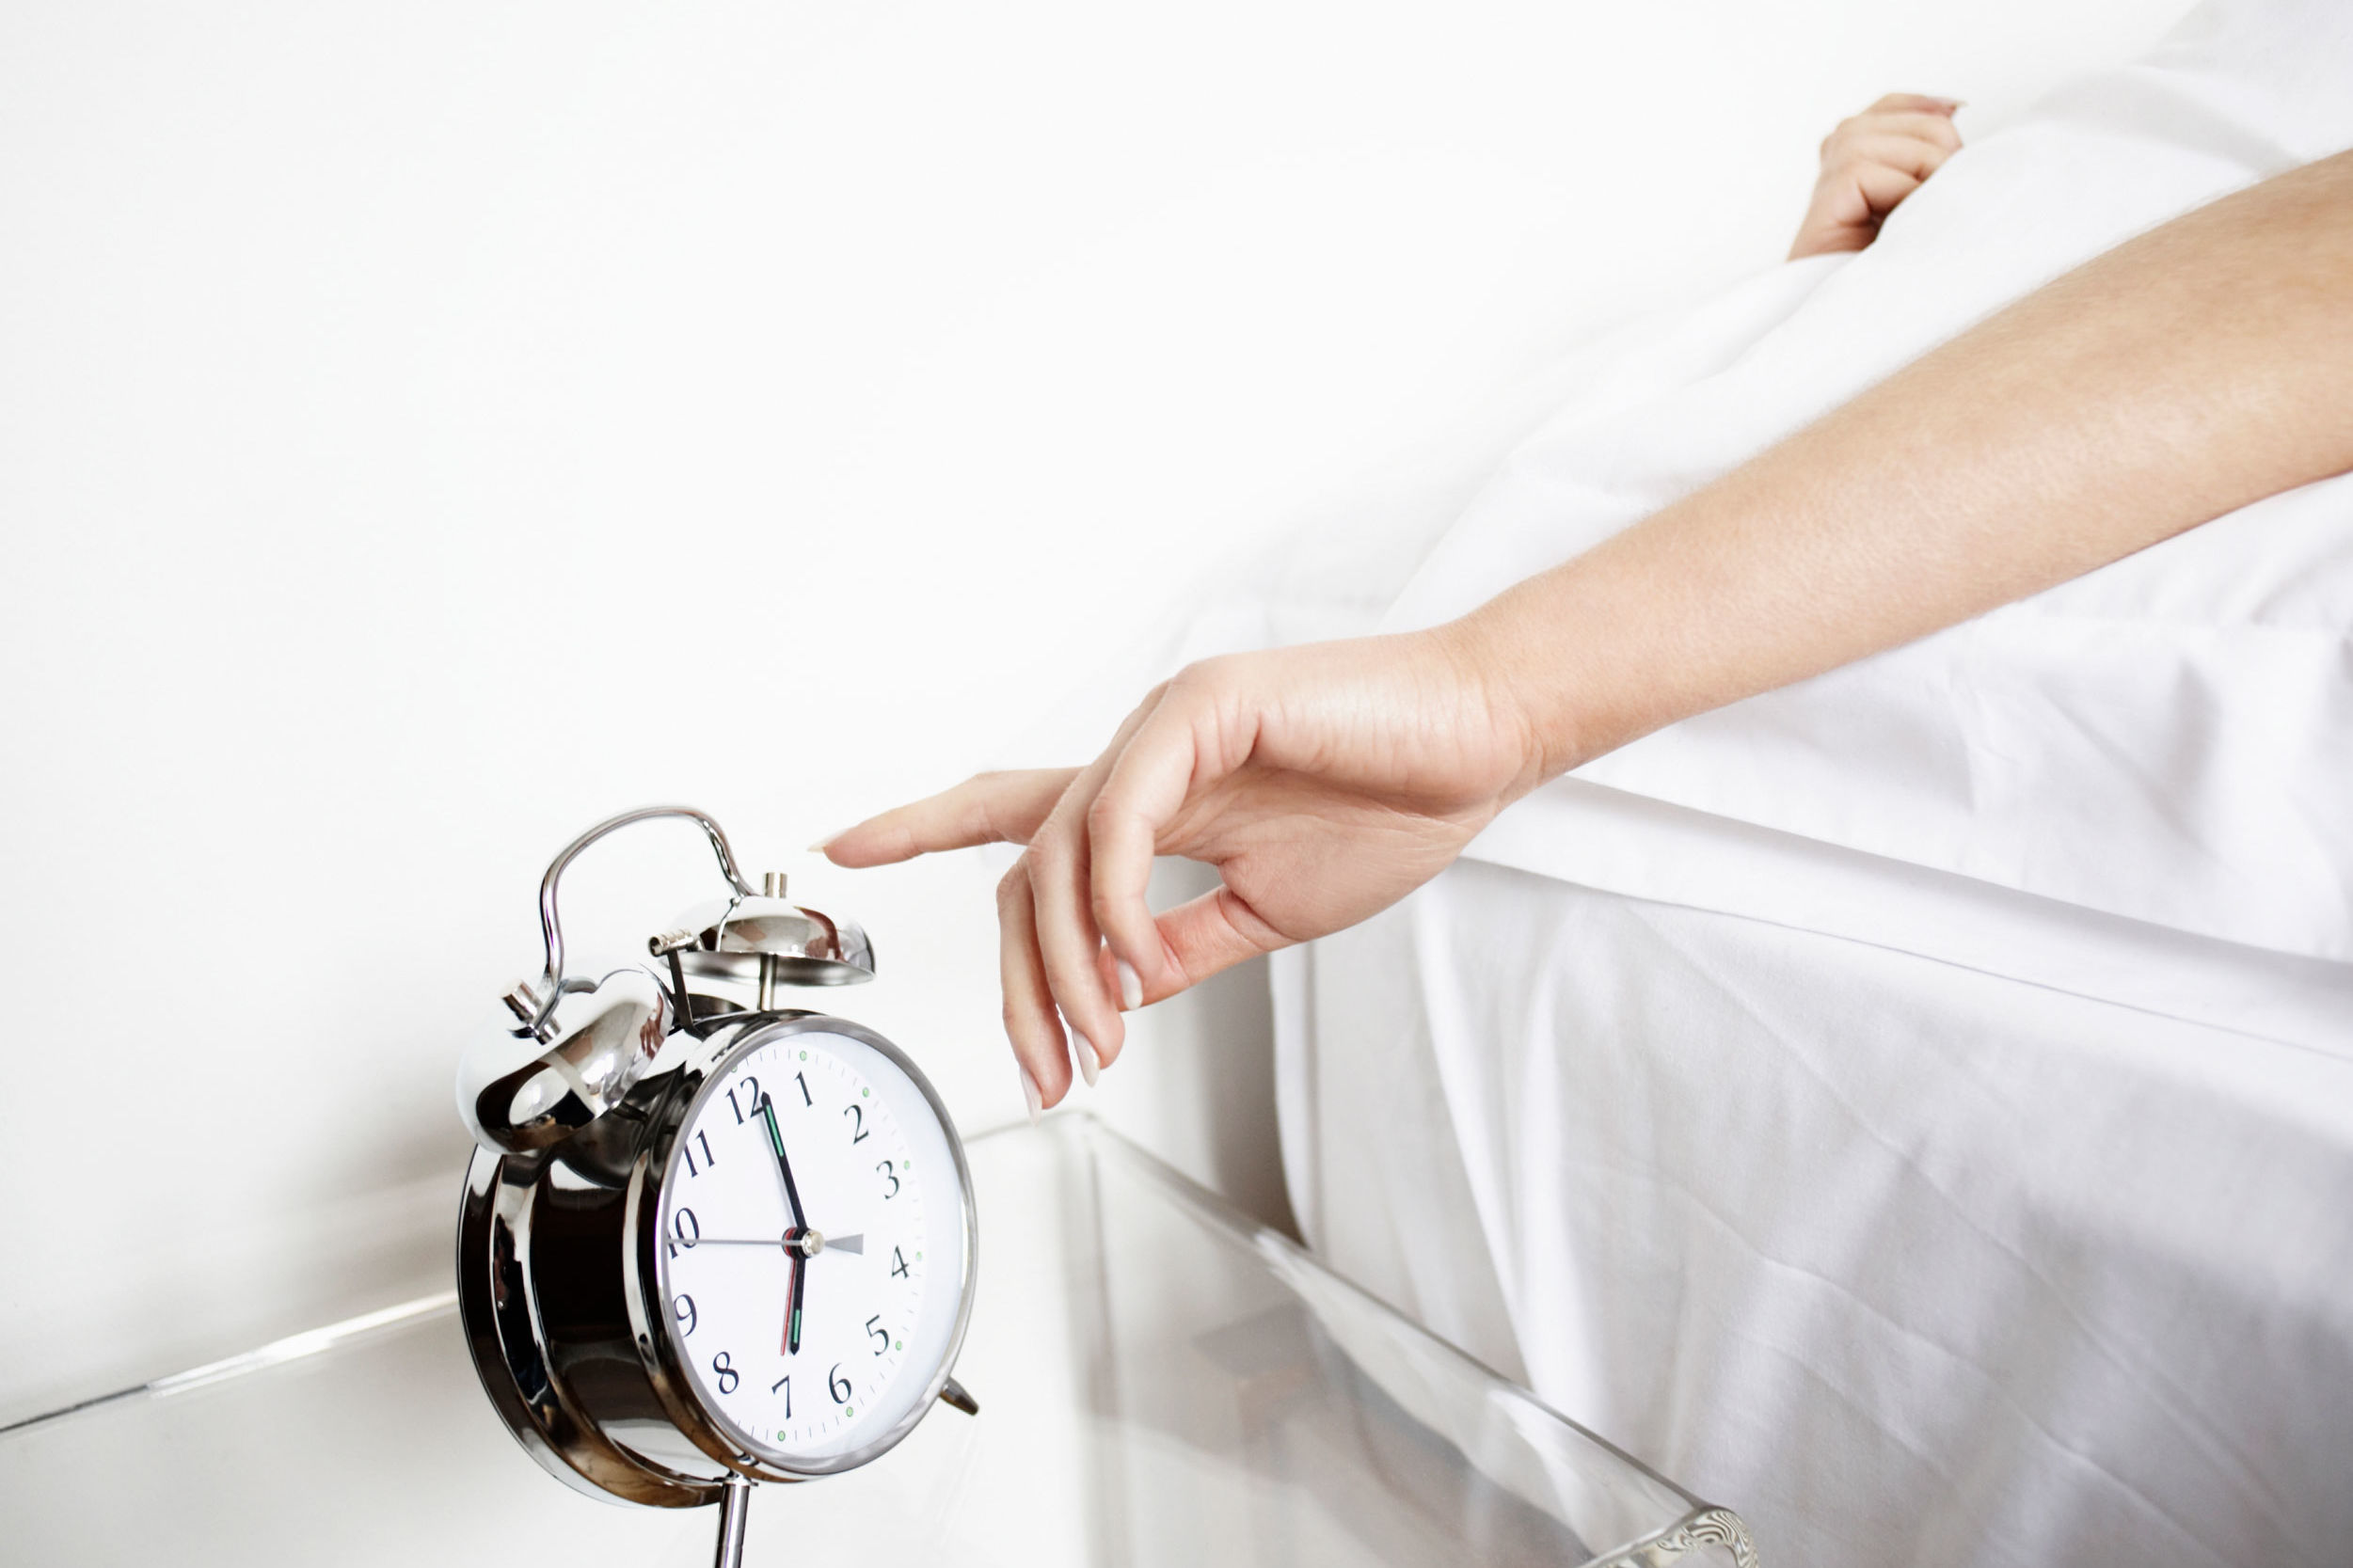 Daylight Saving Time Starts Sunday. Here's What Losing An Hour of Sleep Really Does to Your Body